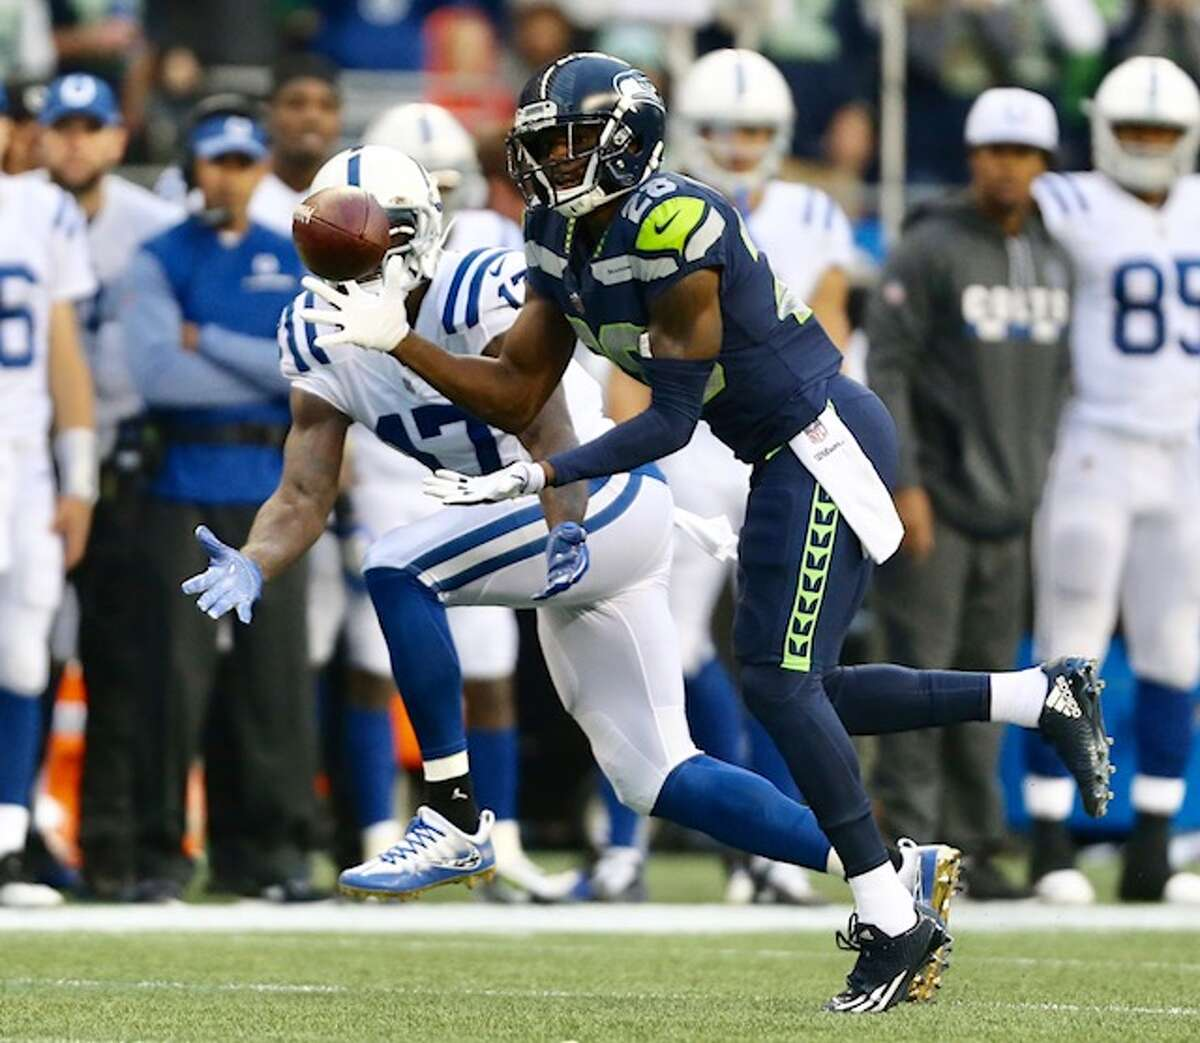 Cornerback Justin Coleman intercepts a pass from Jacoby Brissett in the second quarter of Seattle's game versus the Indianapolis Colts at CenturyLink Field on Sunday, Oct. 1, 2017.